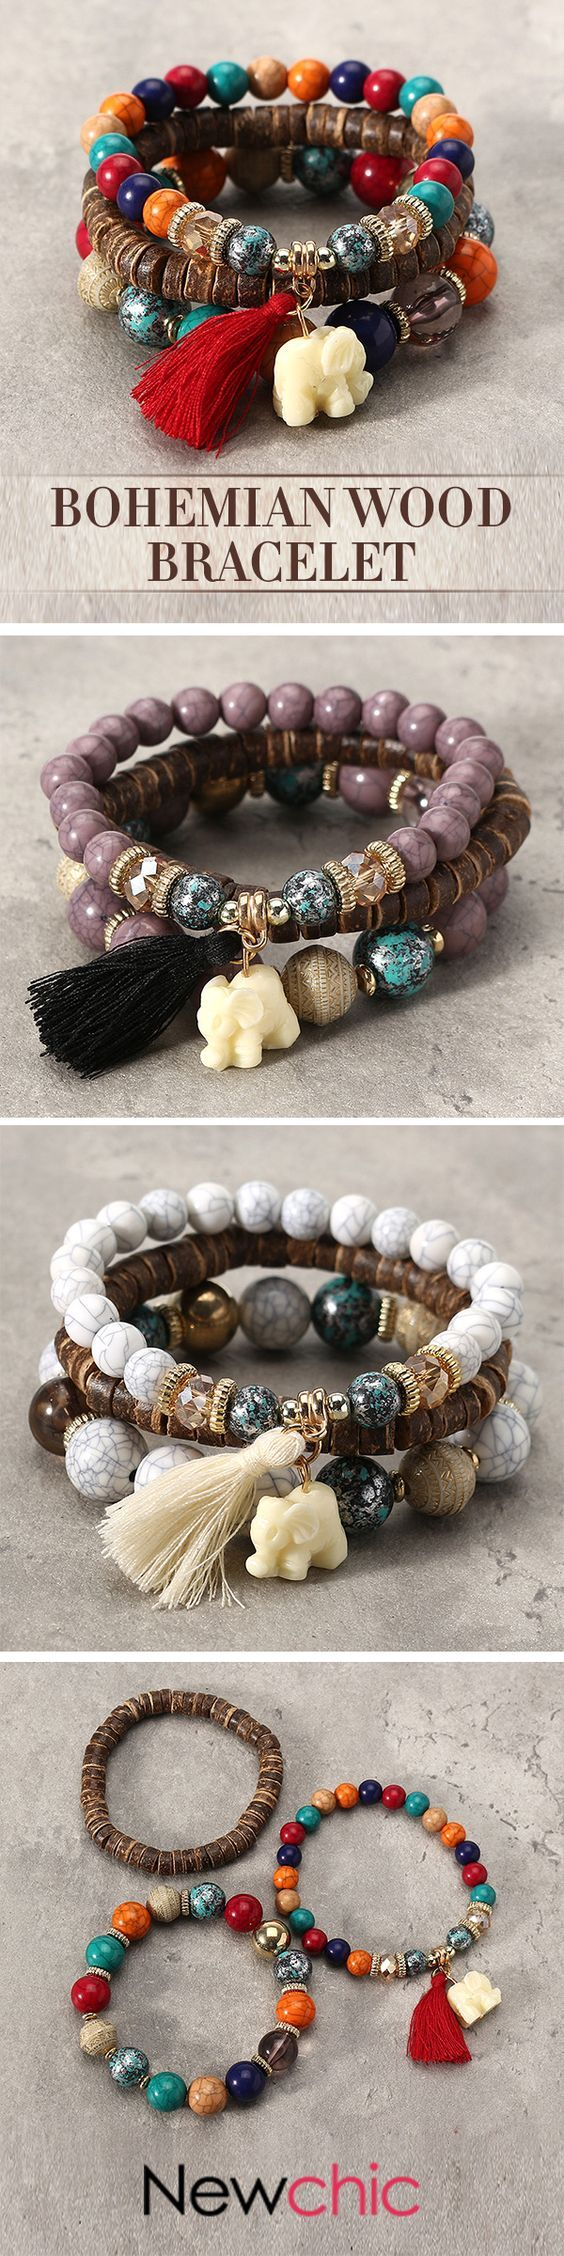 360 best bracelet ideas . . . images on pinterest | stone, beads